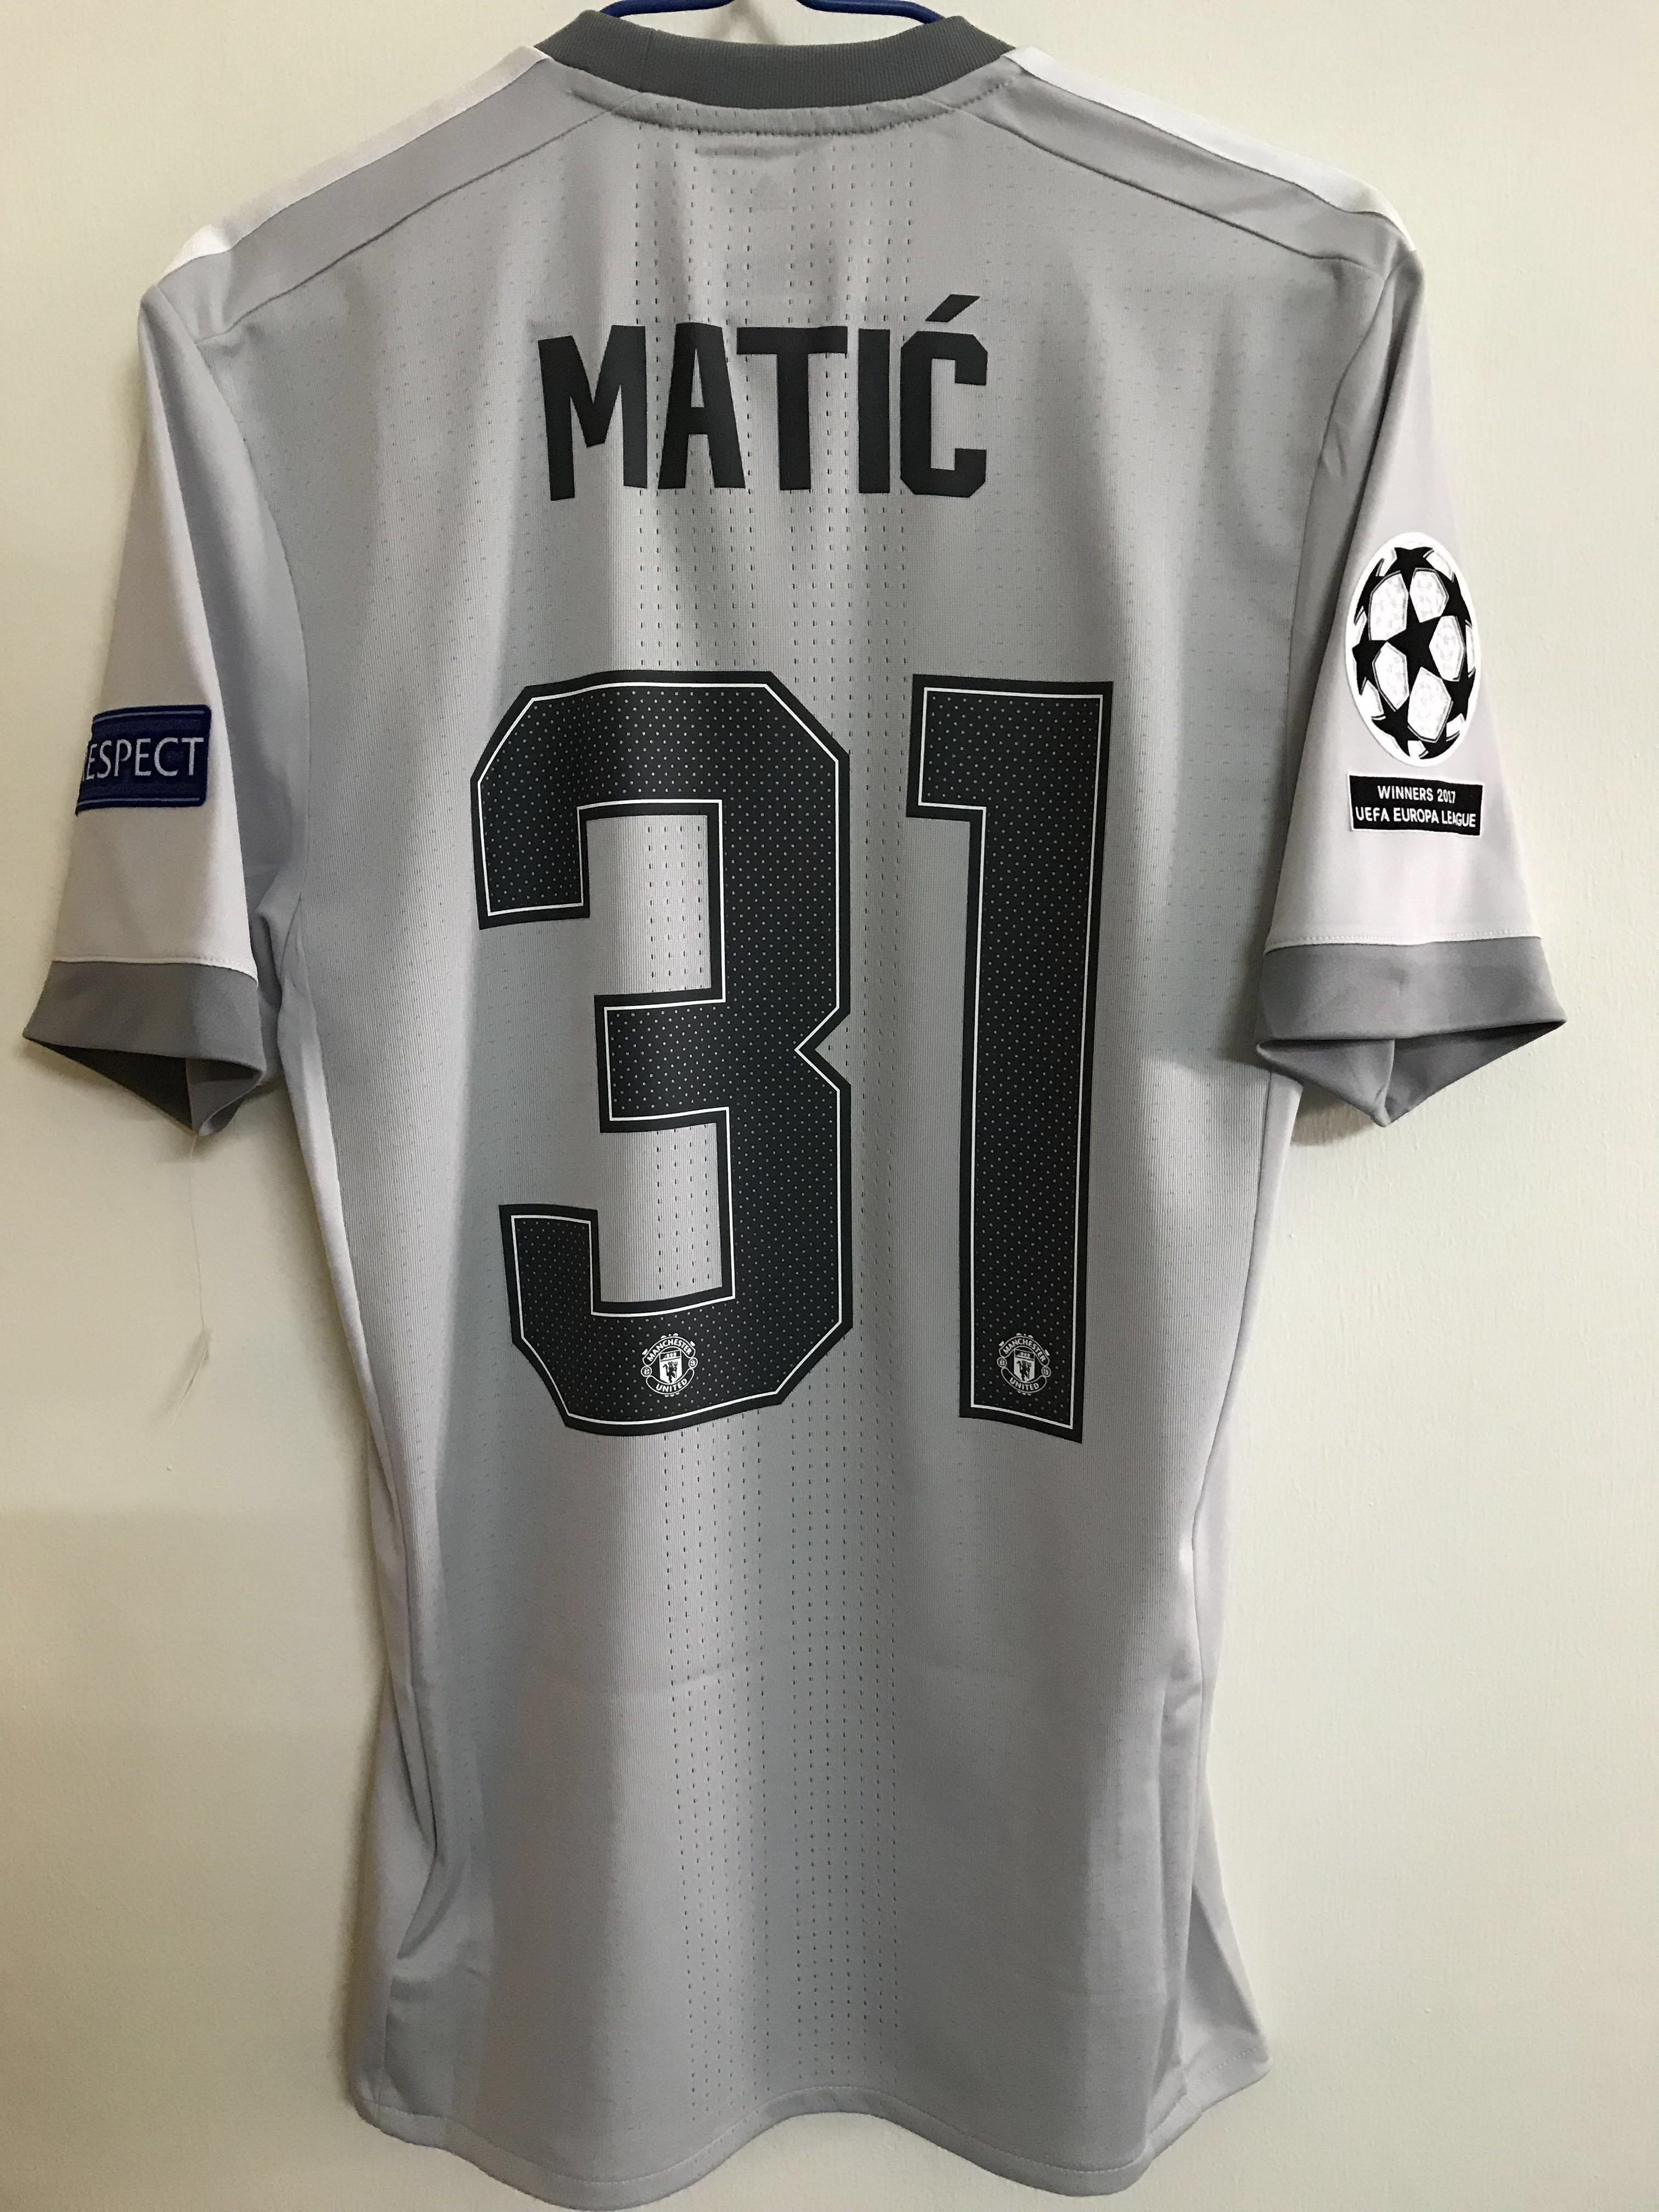 958c6aff2 Official Authentic Adidas Adizero Manchester United 2017-2018 3rd Third  Jersey MATIĆ  31 Player Issue Shirt UCL UEFA Champions League EPL